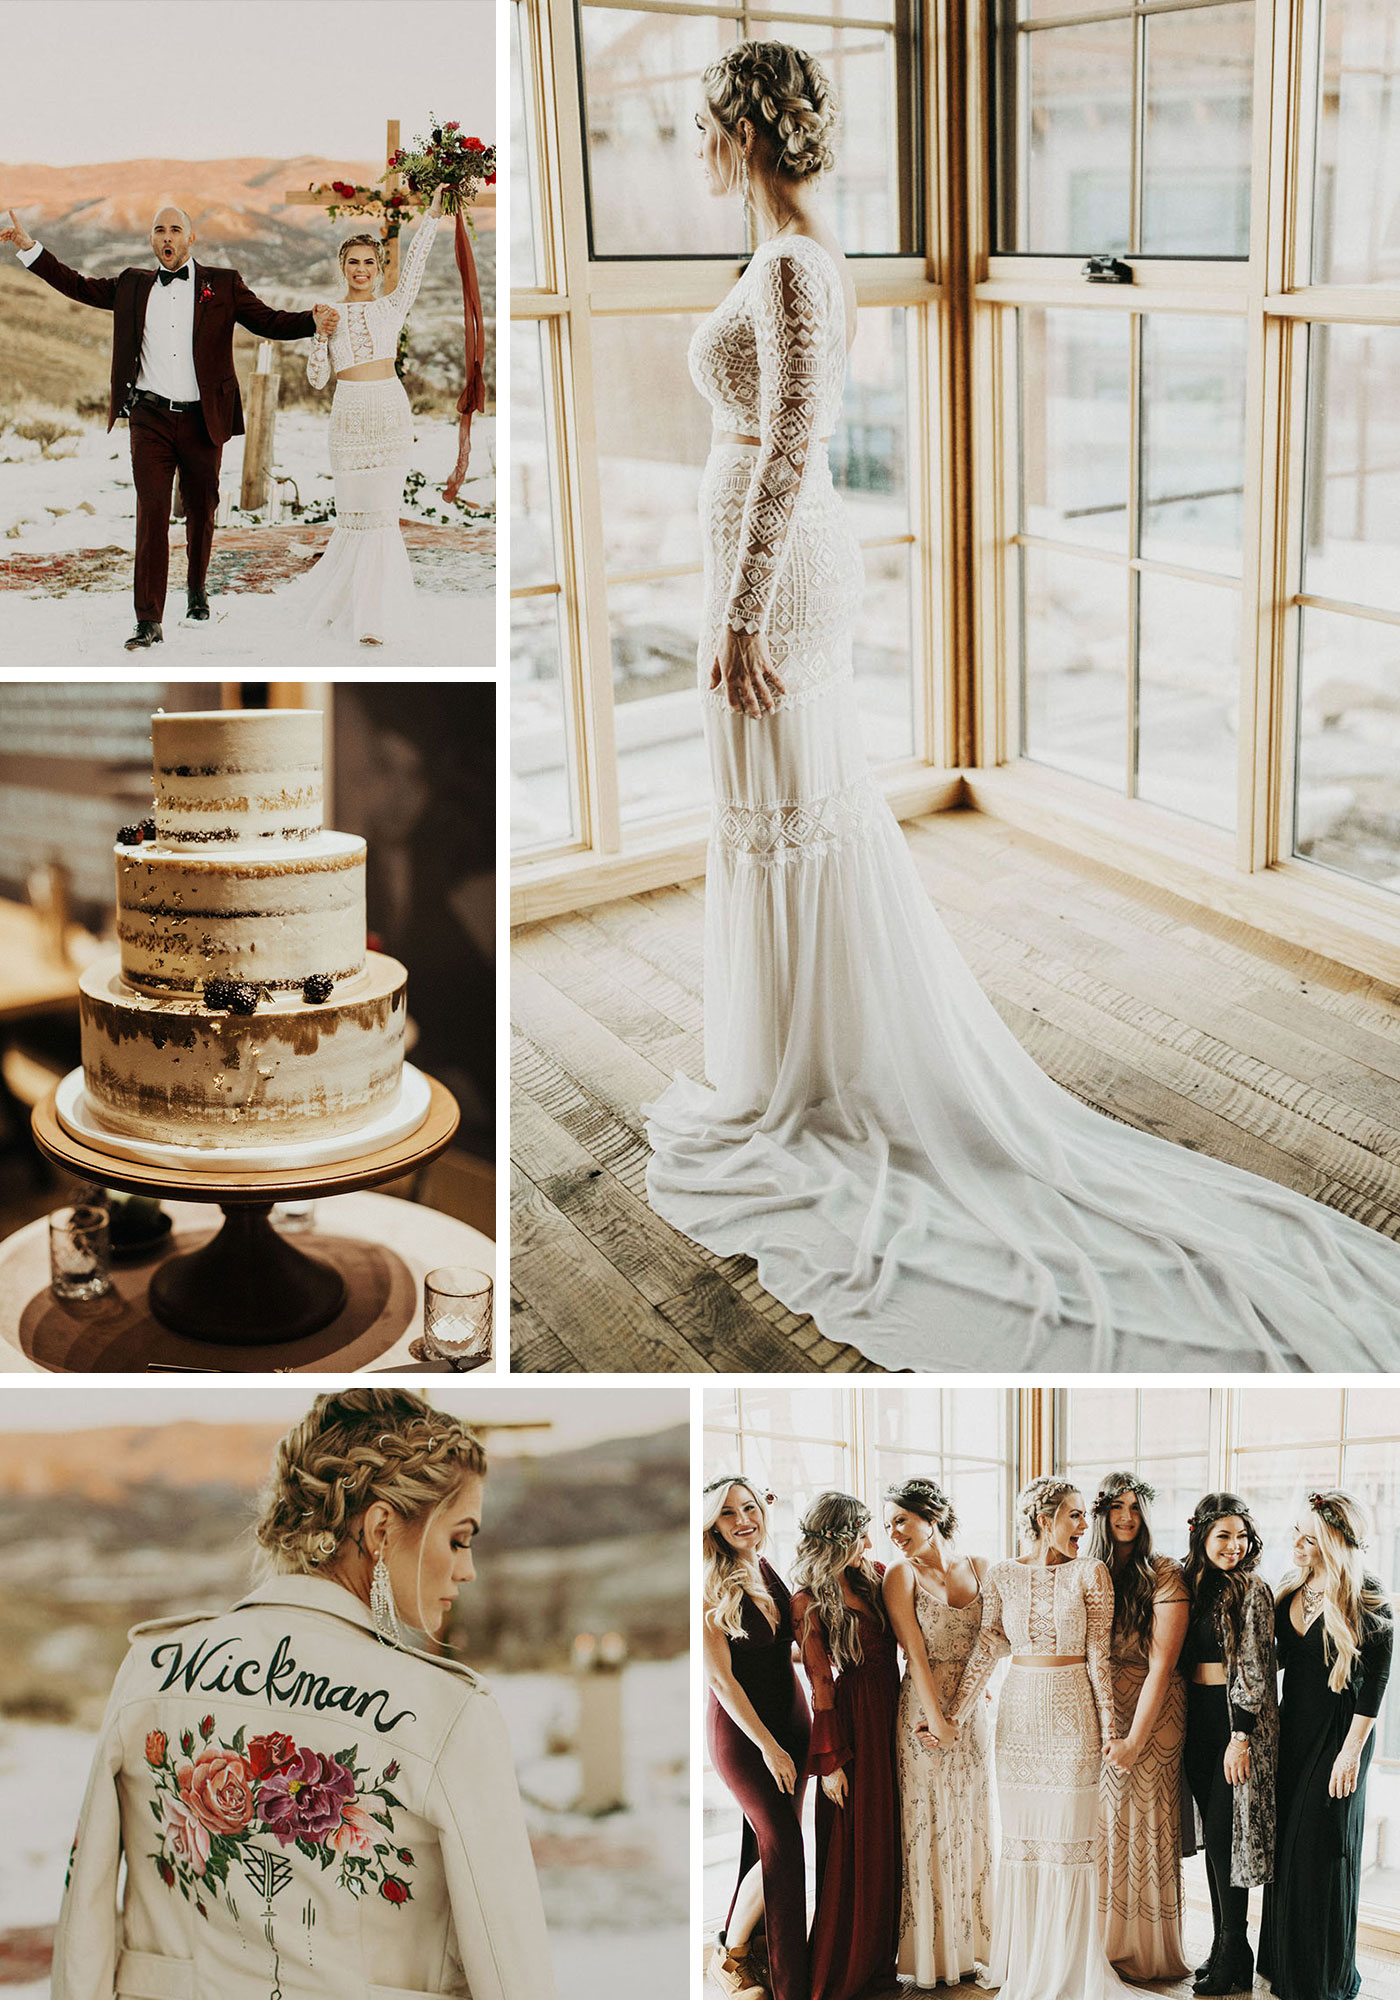 Chic and Moody Wedding on a Snowy Mountaintop